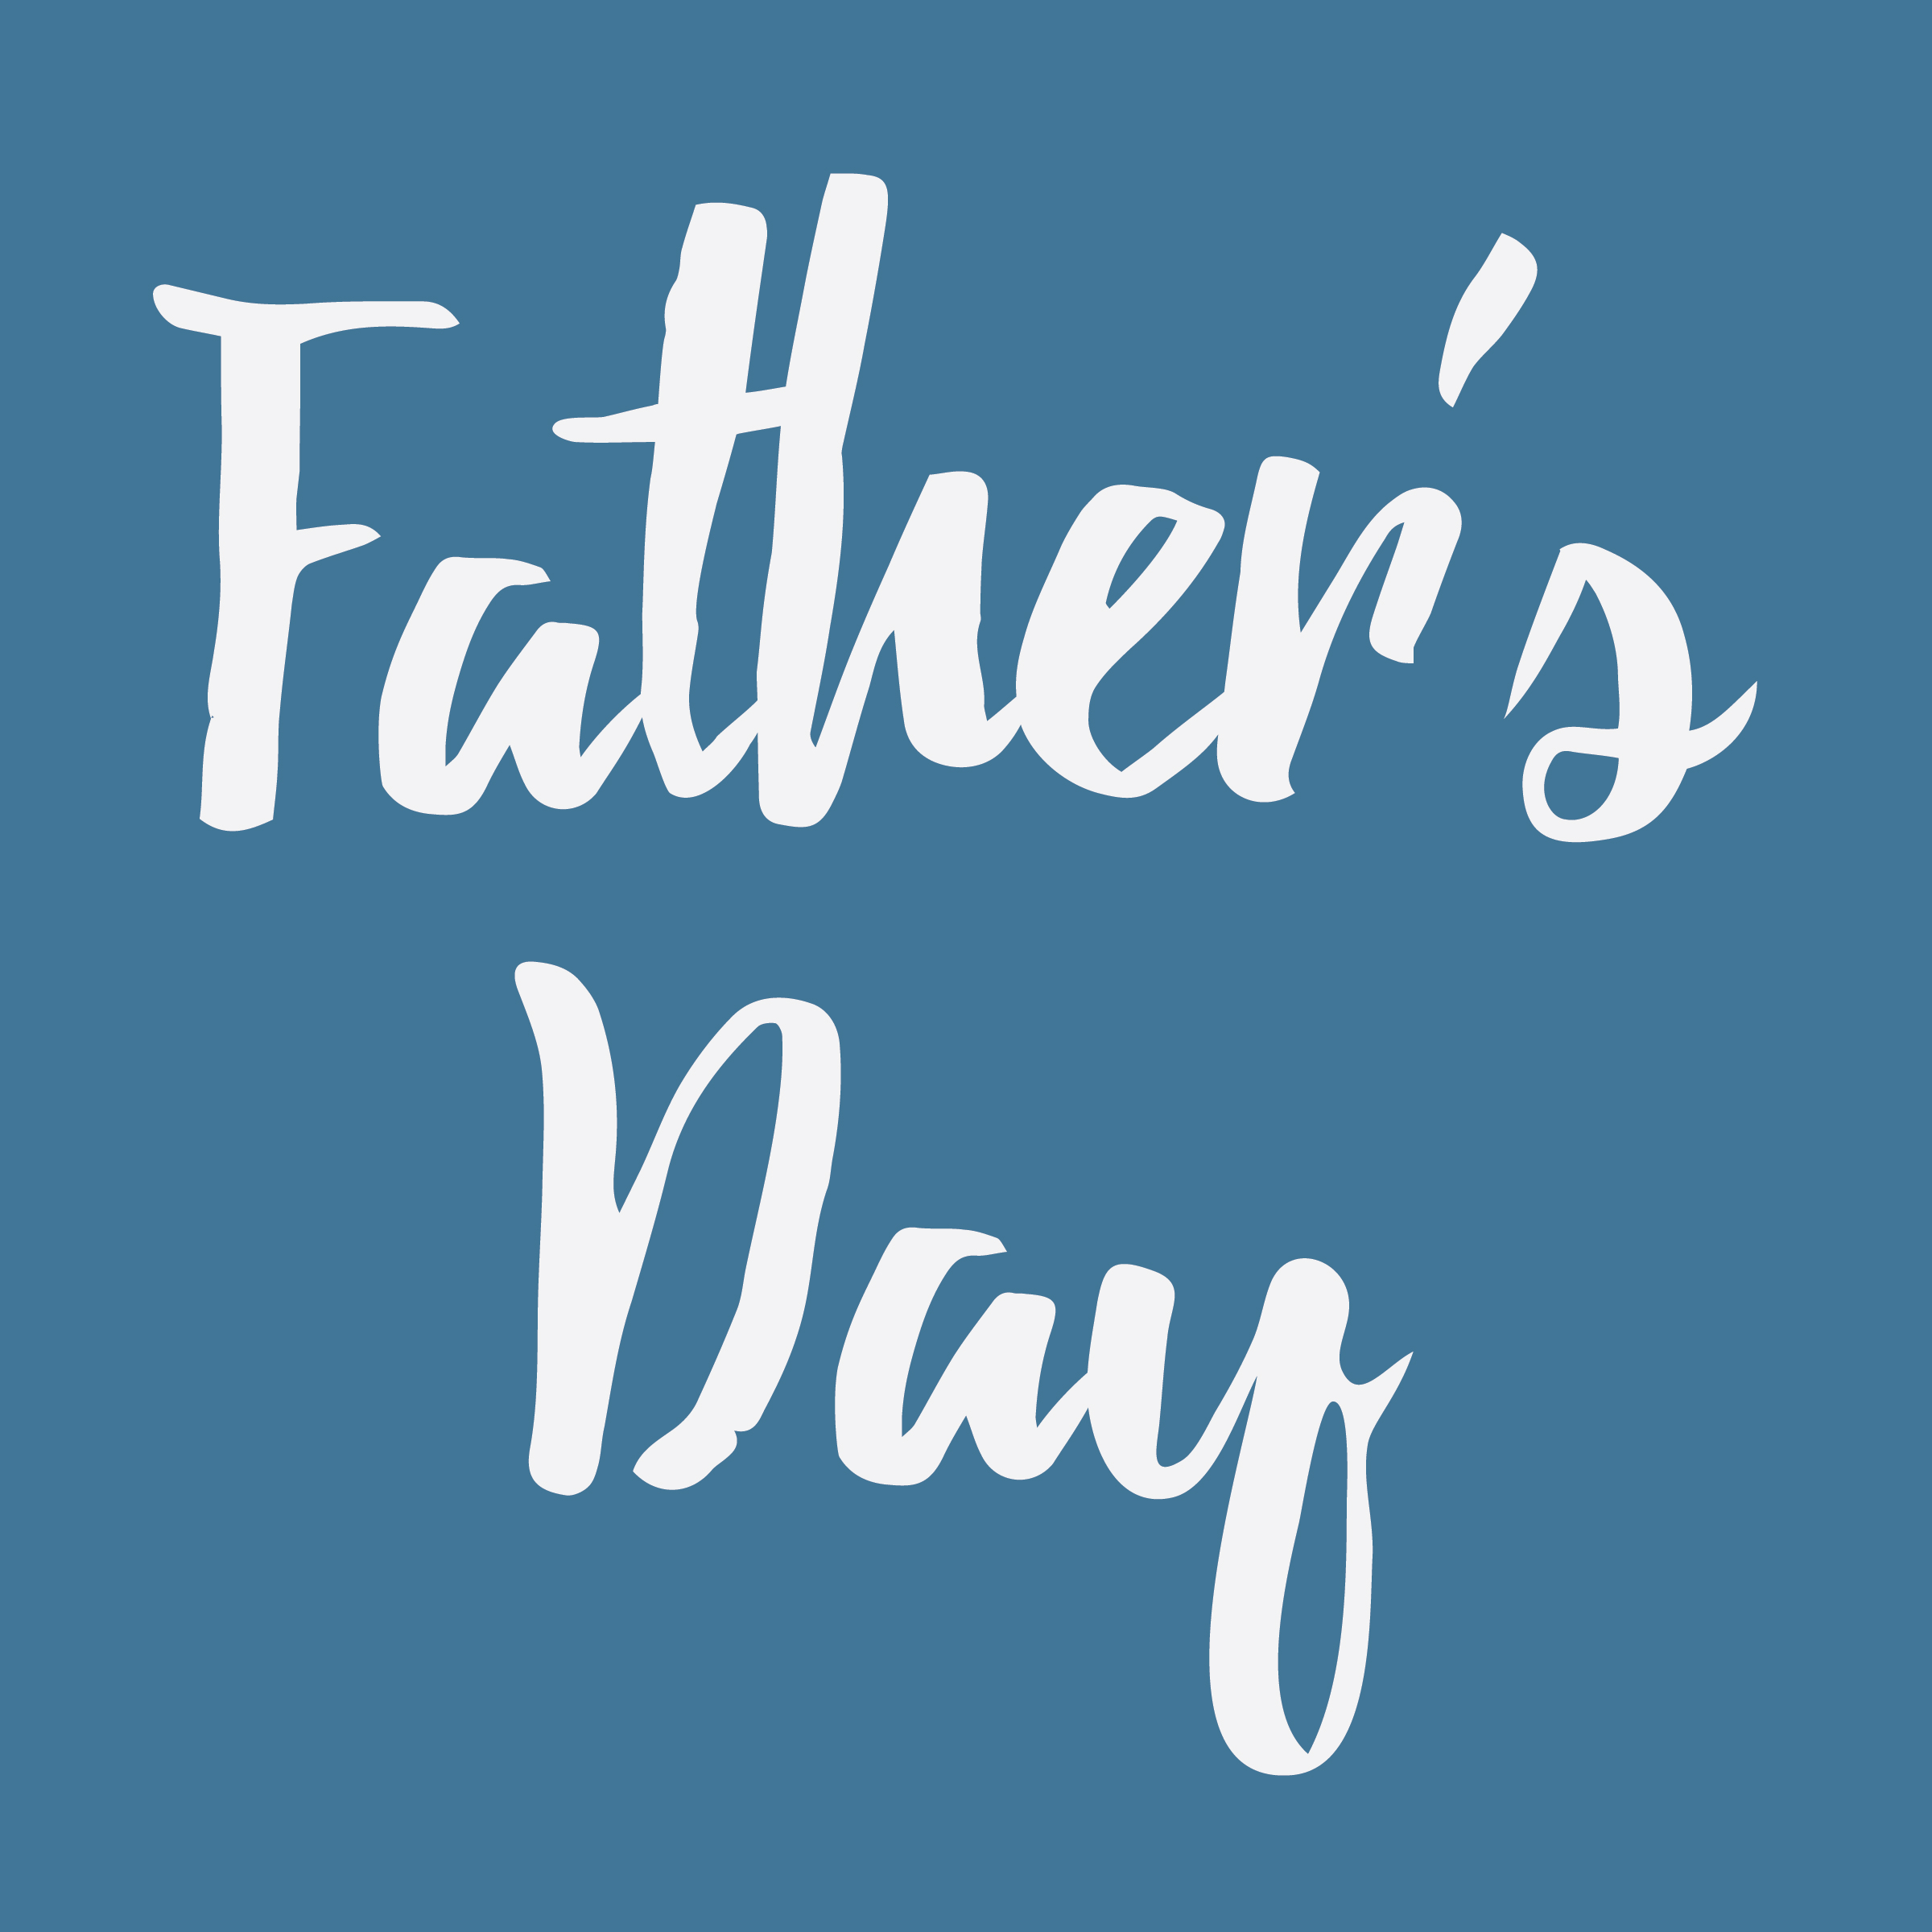 Don't forget Father's Day- Sunday June 18th. Tell him you love him!